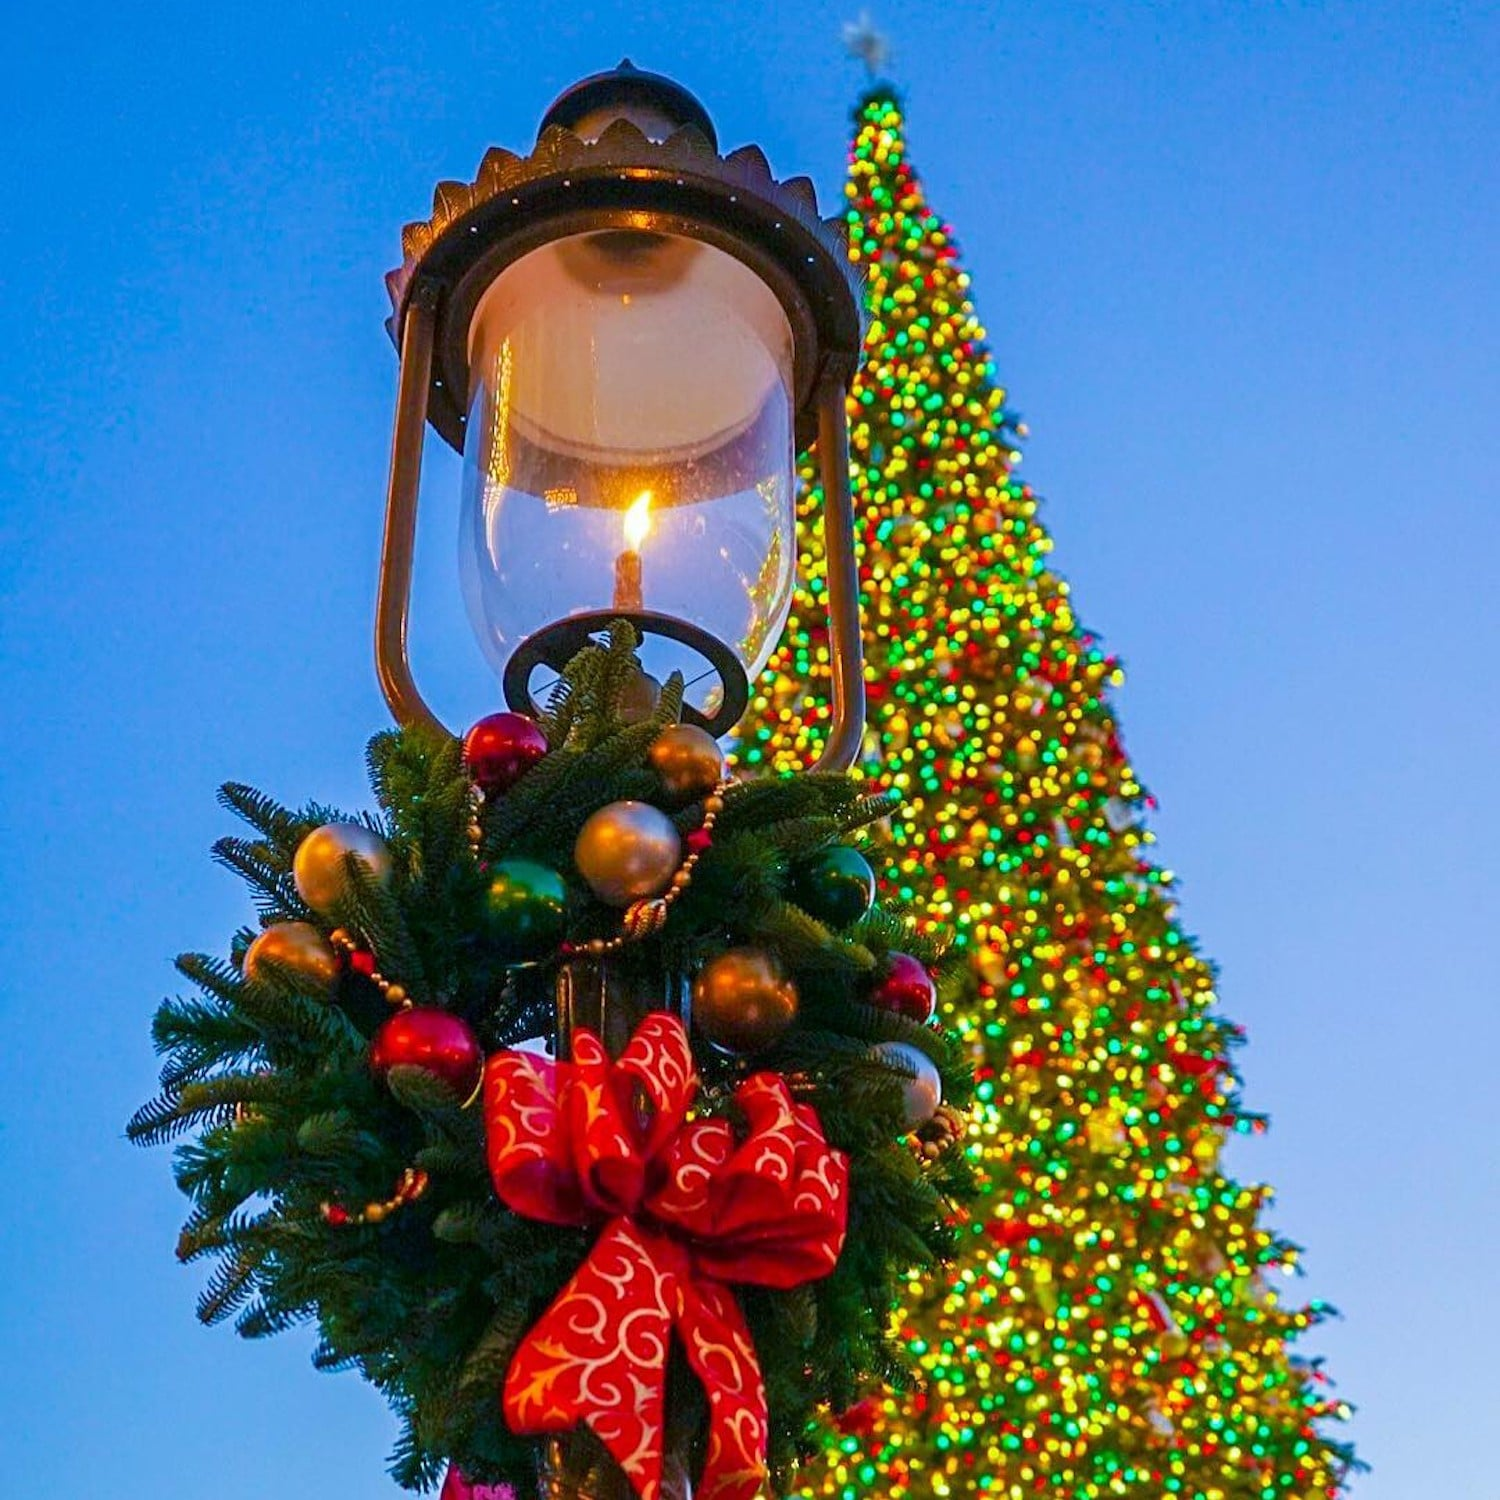 When Does Disneyland Decorate For Christmas.Disneyland Christmas Decorations 2018 Popsugar Family